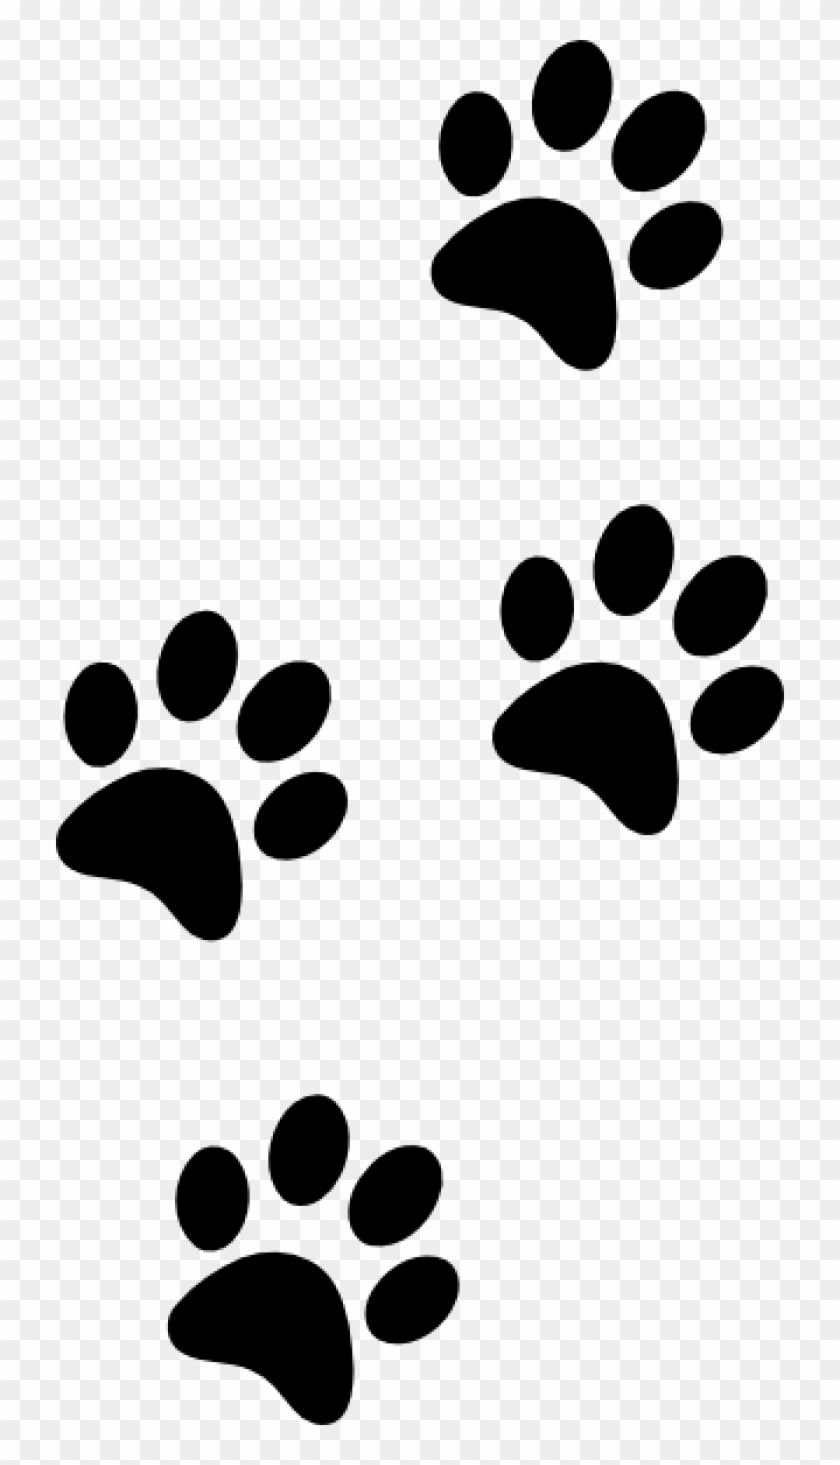 Download Dog Paw Png Images Png Gif Base We only accept high quality images, minimum 400x400 pixels. download dog paw png images png gif